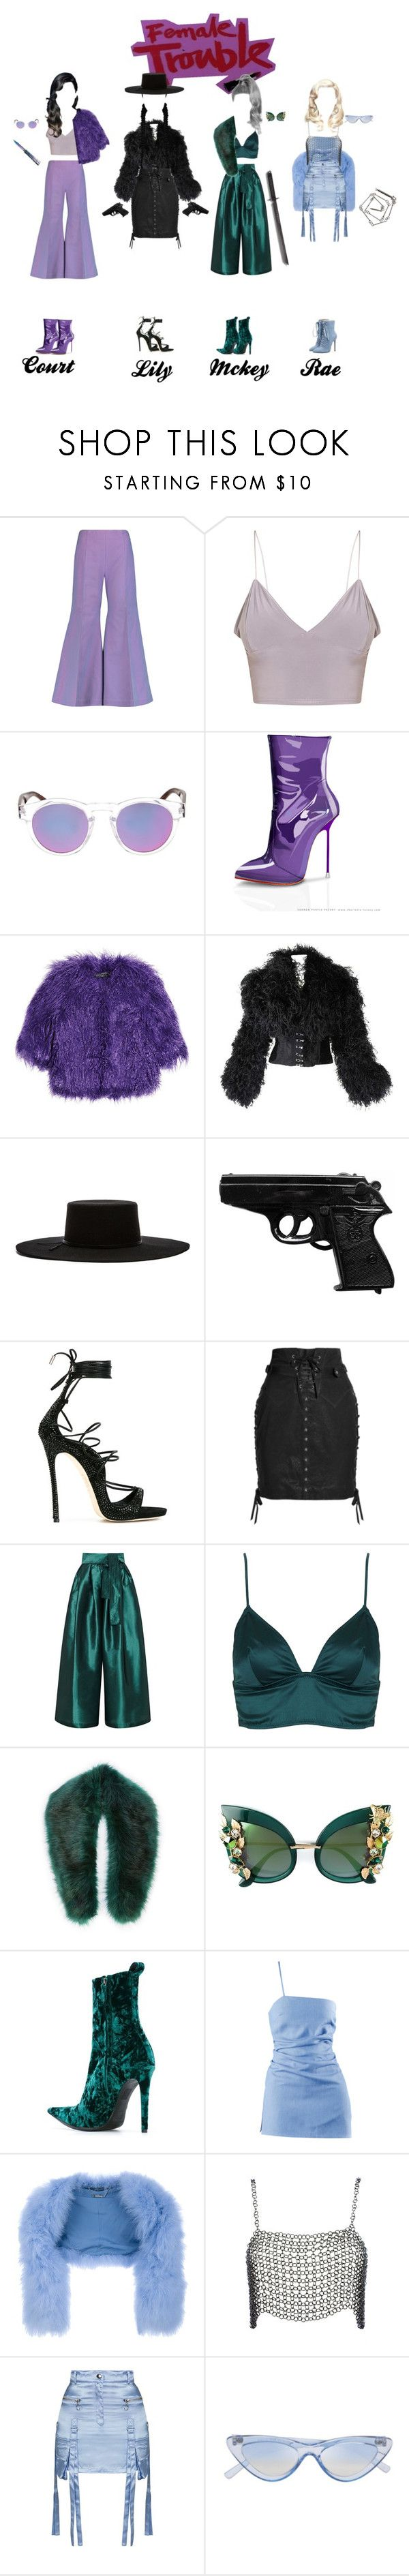 """Femme Fatale"" by mckeyluvsu ❤ liked on Polyvore featuring Acne Studios, Illesteva, Shrimps, Brixton, Dsquared2, Isabel Marant, Tome, Topshop, Sole Society and Dolce&Gabbana"